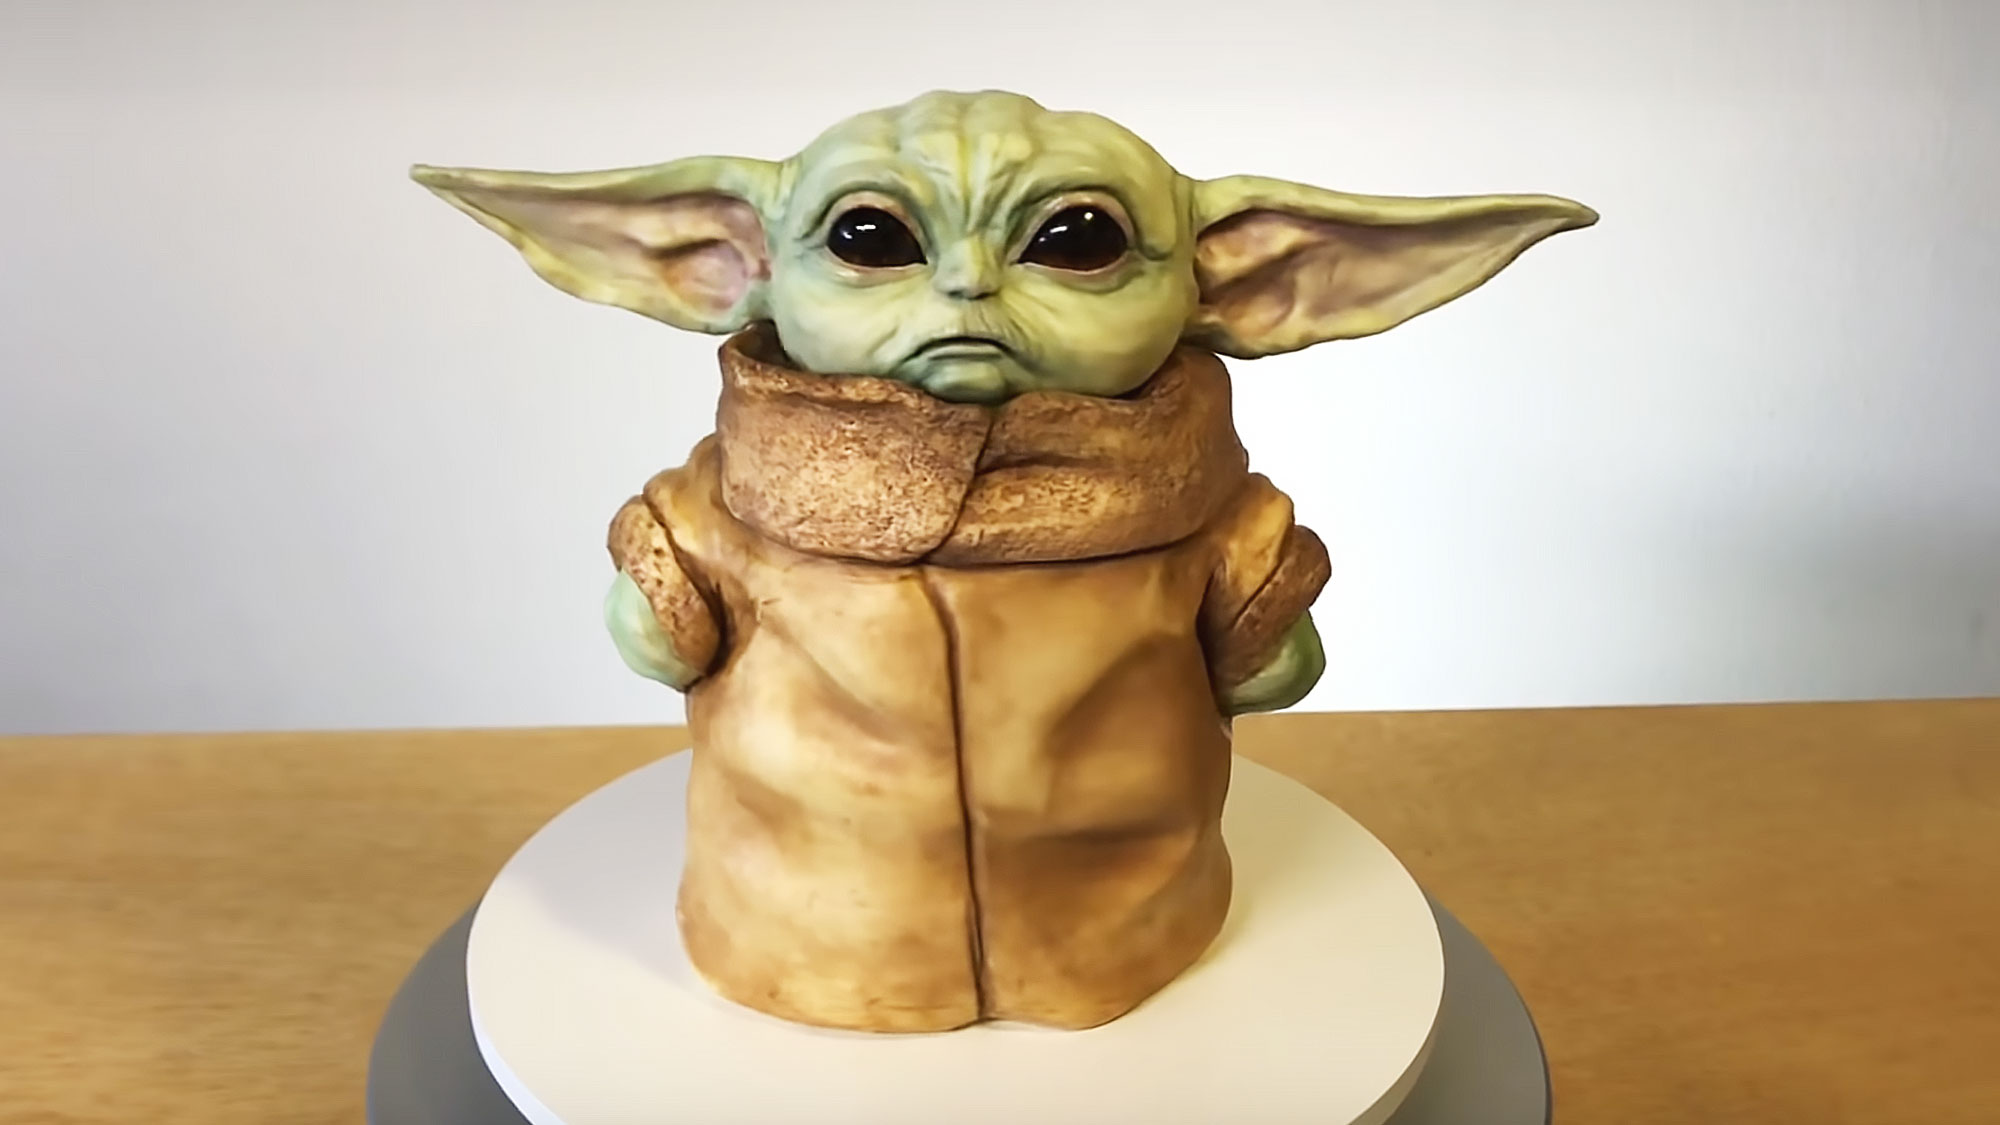 How to Get Real Baby Yoda Toys from Official Sources